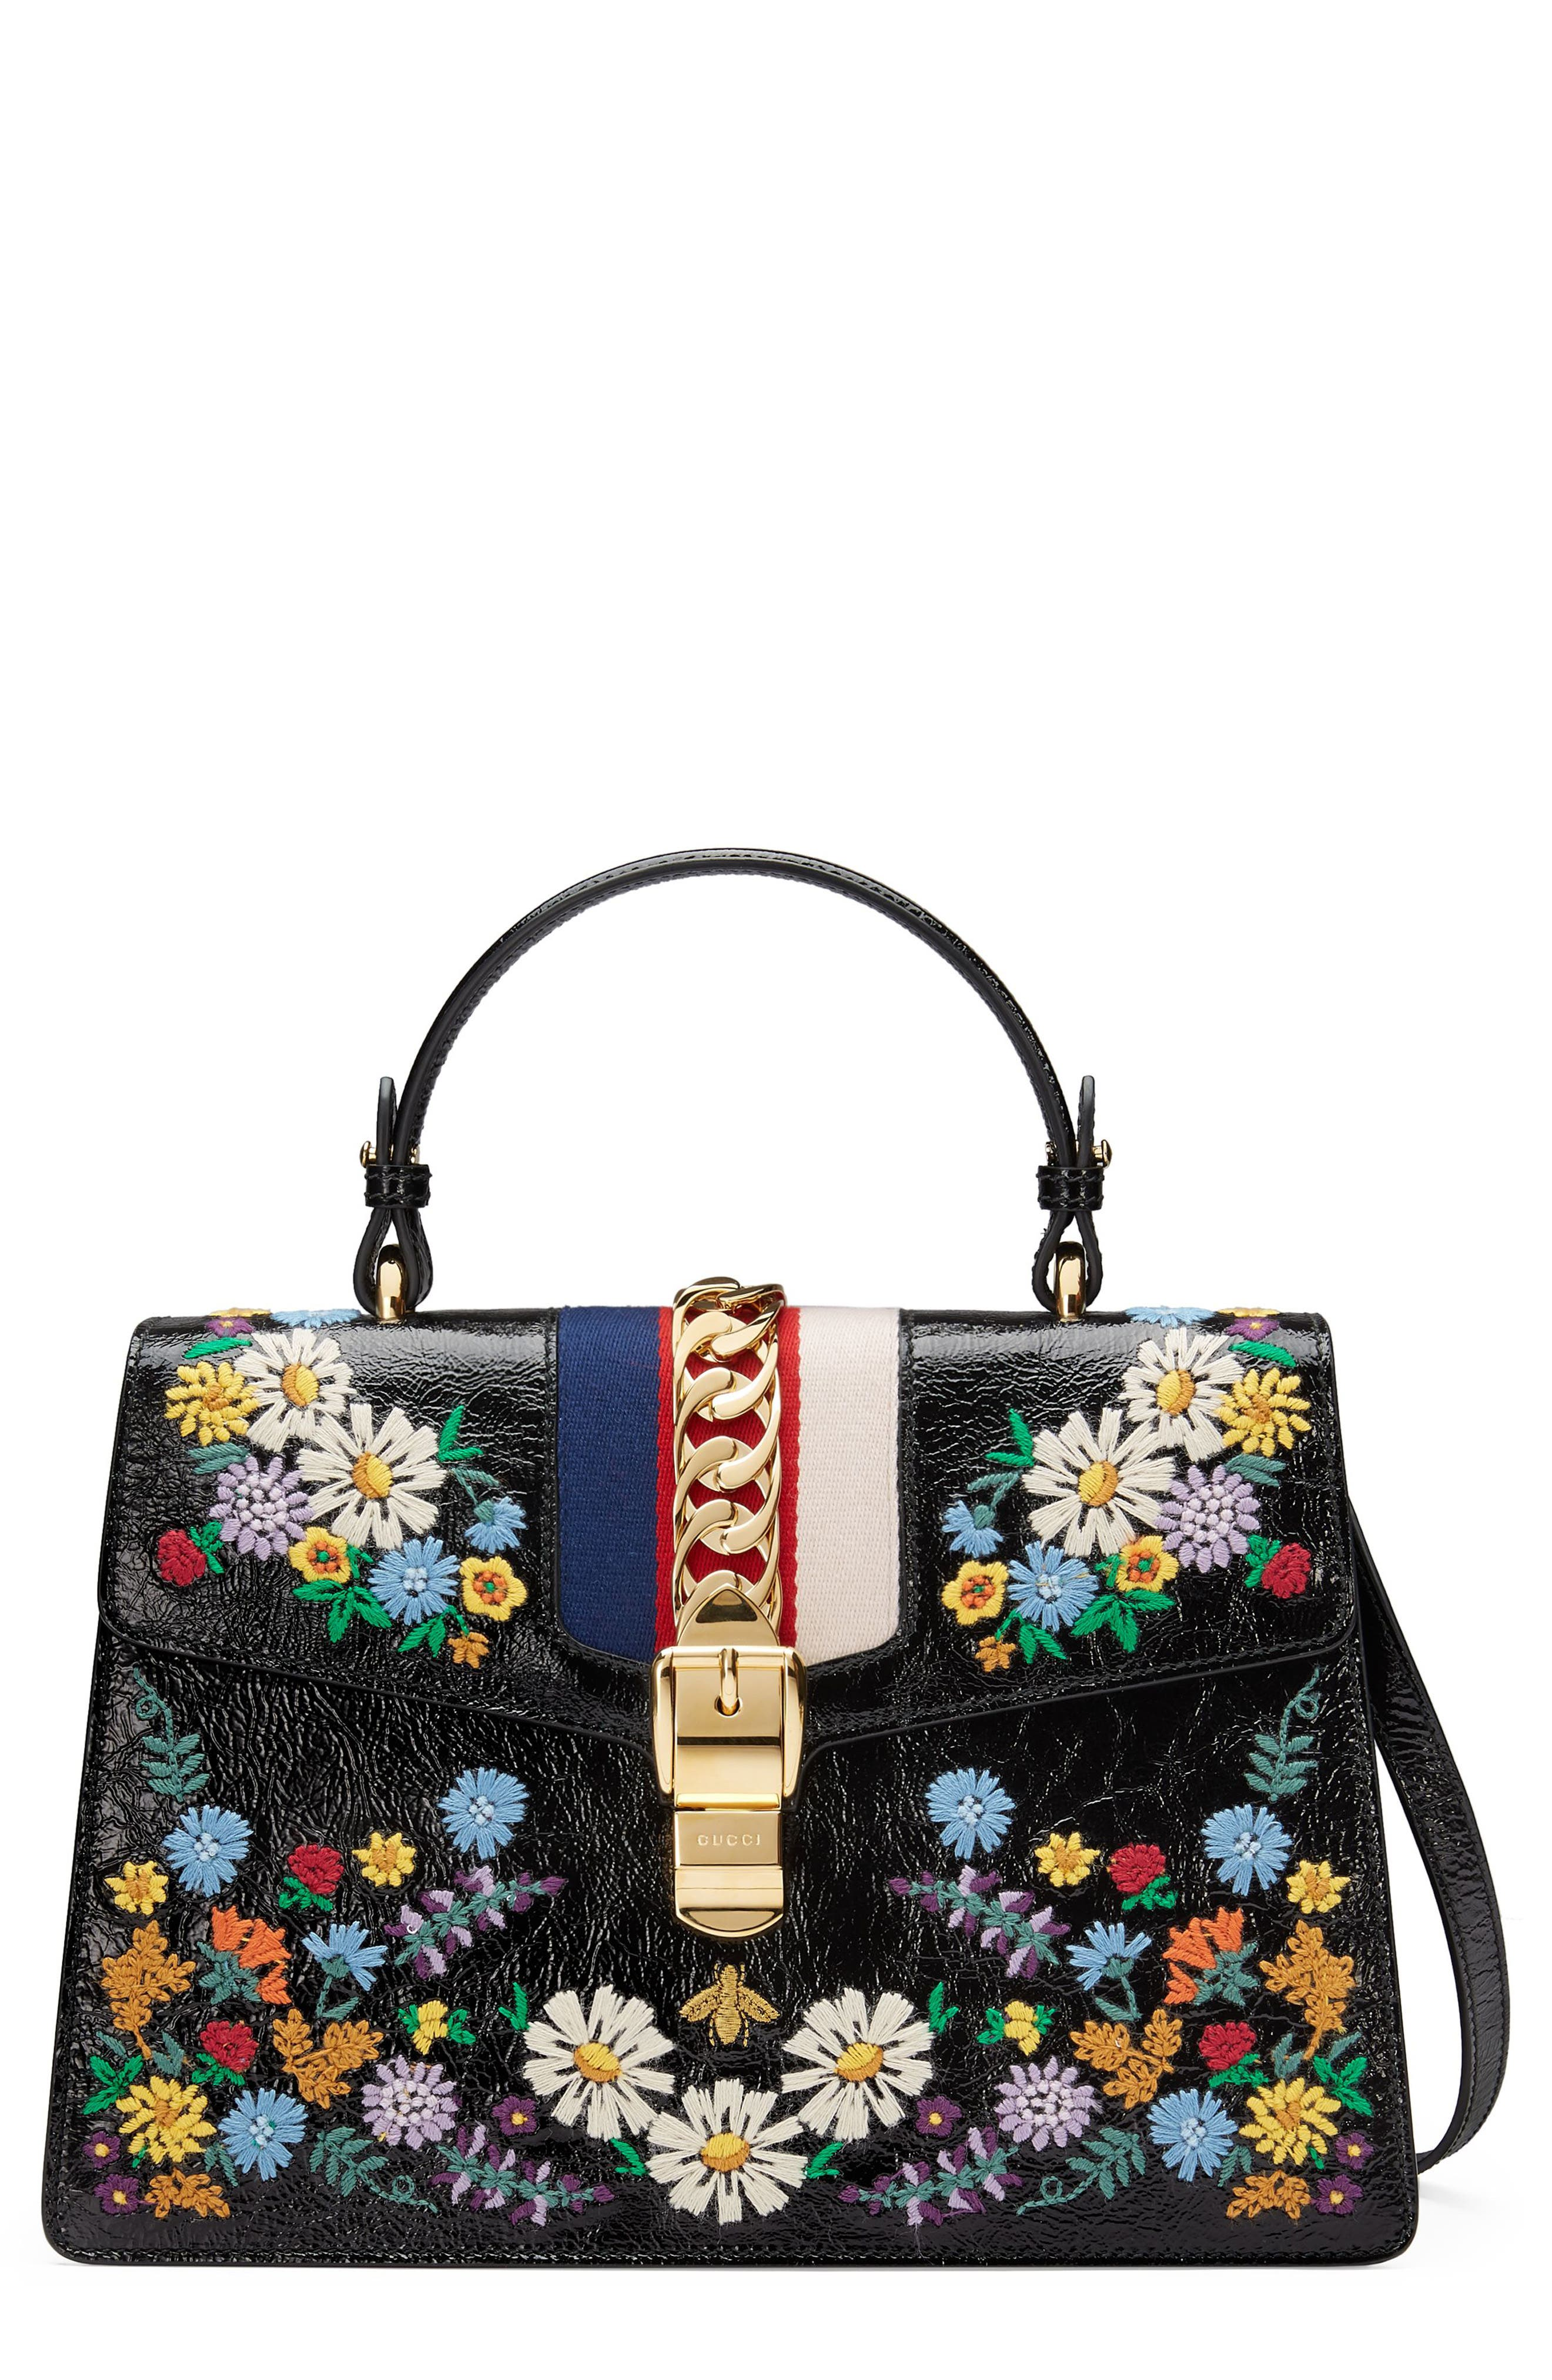 Main Image - Gucci Medium Sylvie Floral Embroidered Top Handle Leather Shoulder Bag